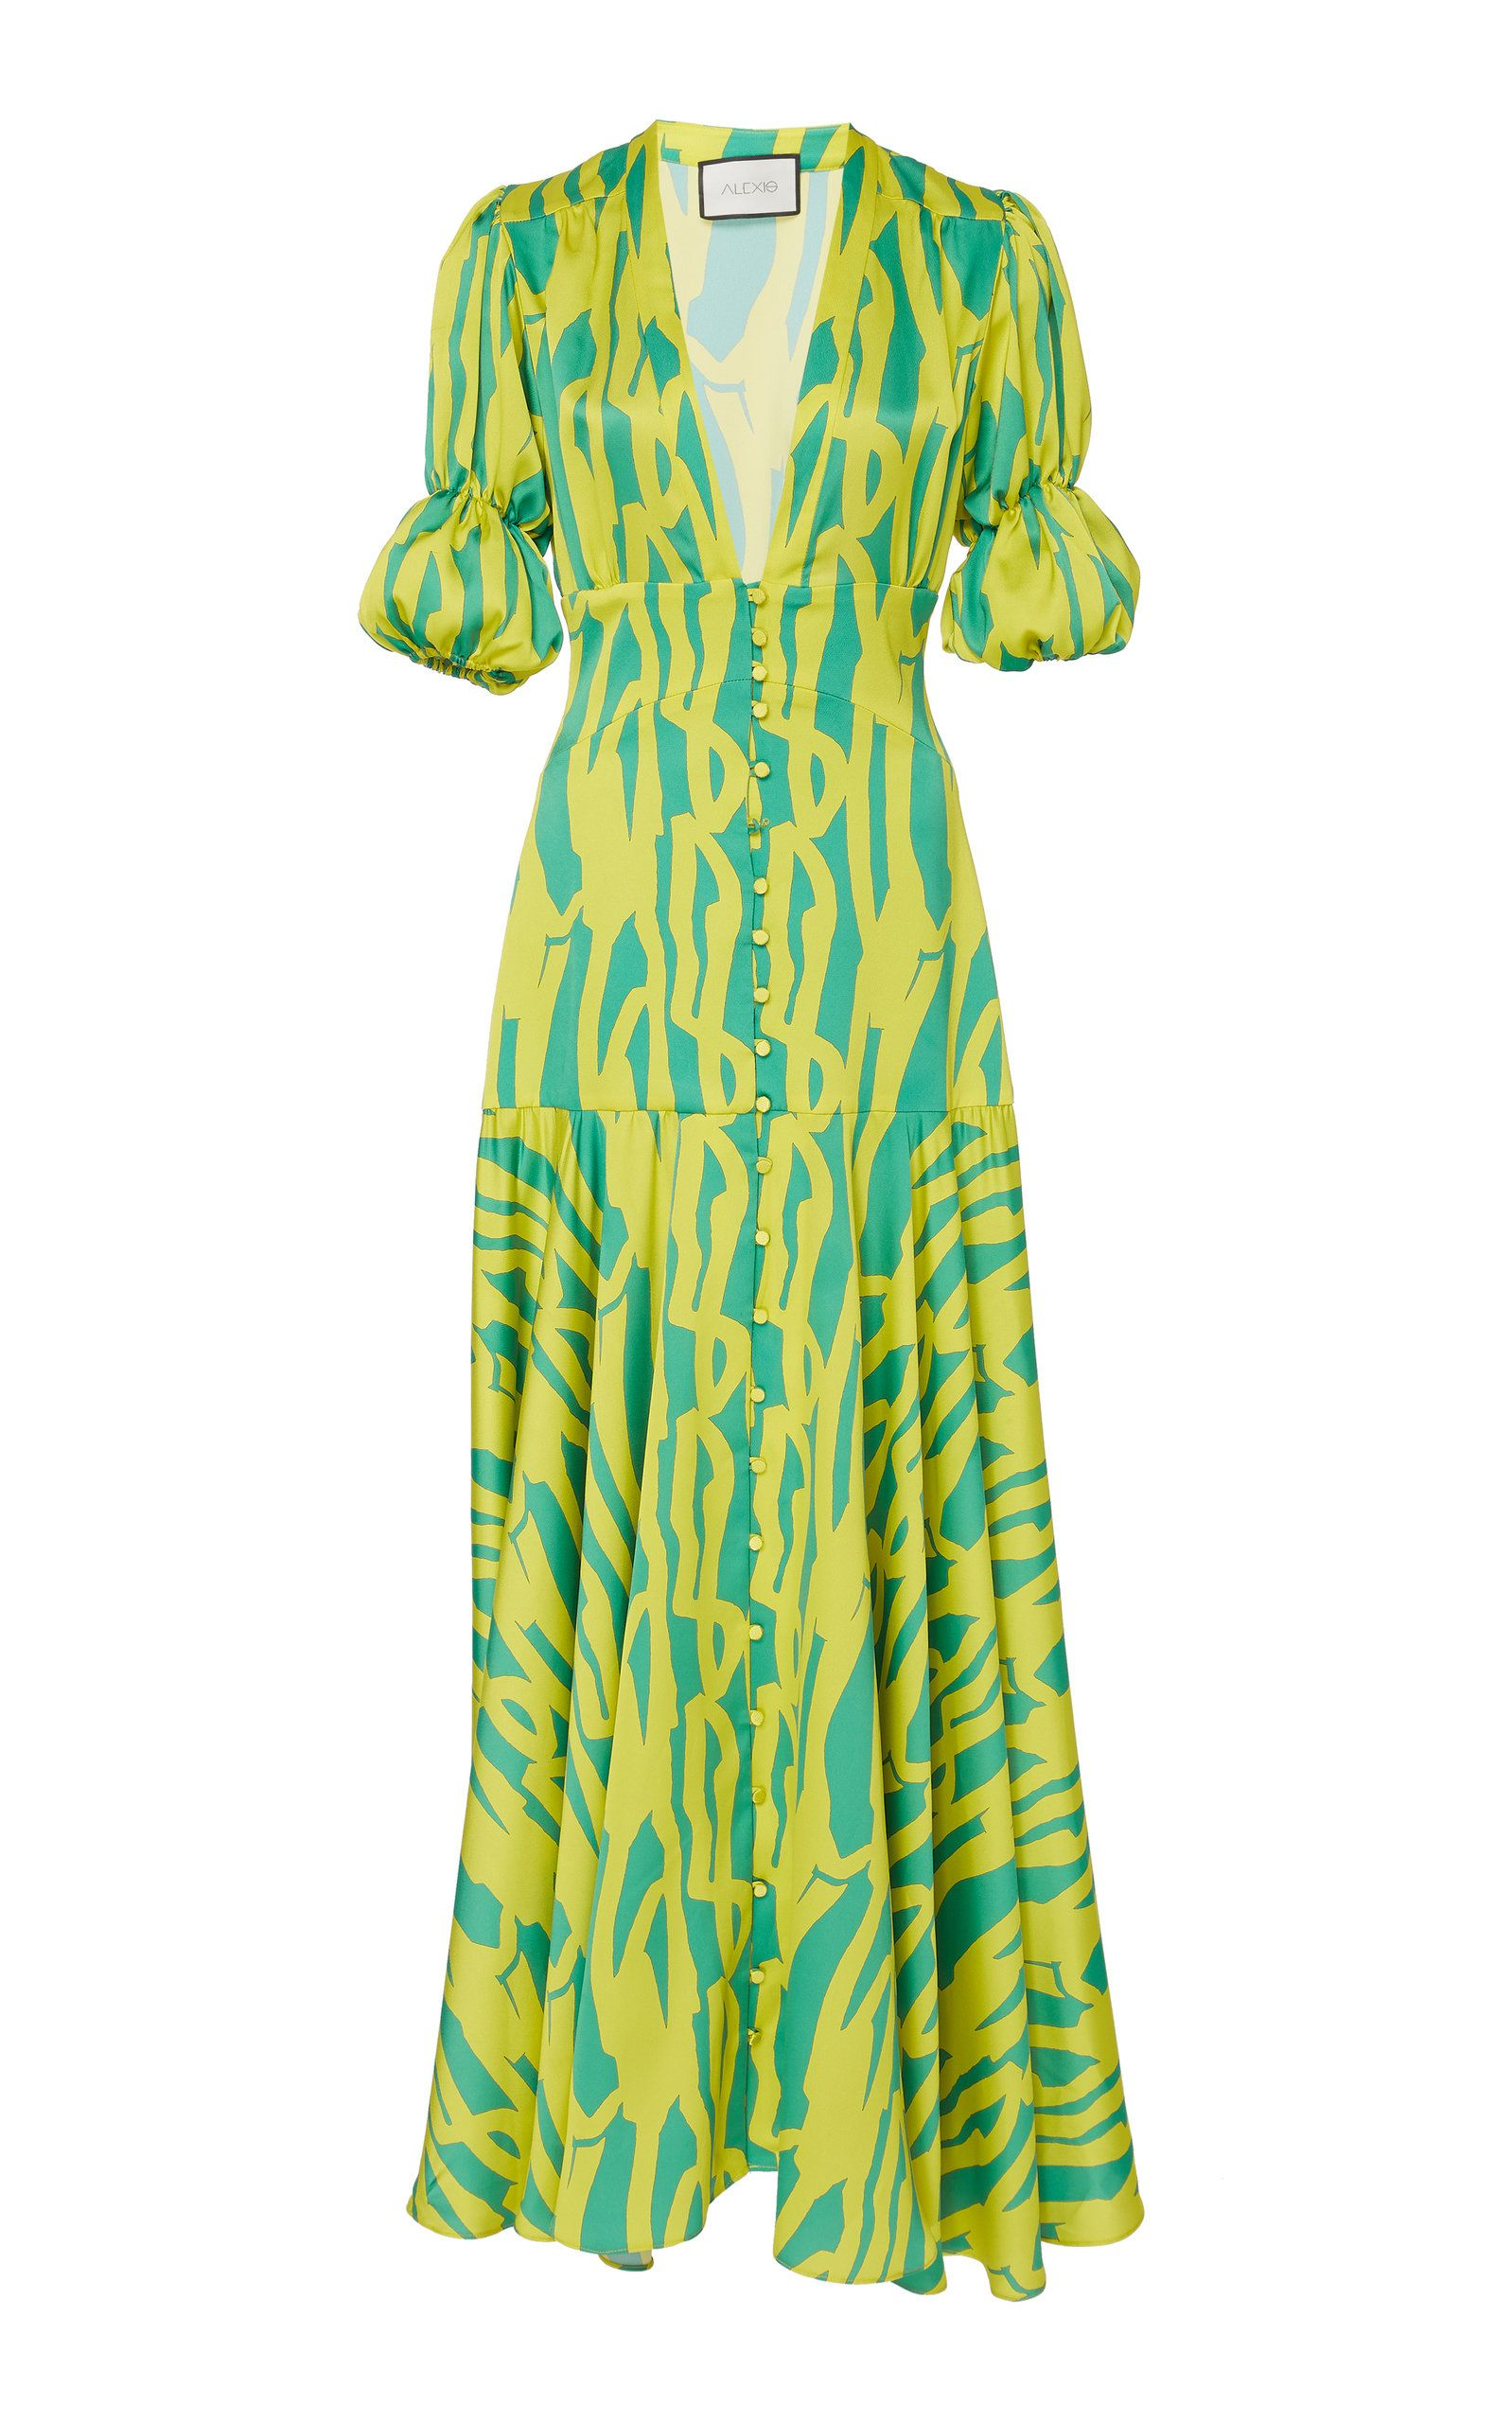 528a45be620772 Alexis Zuella Printed Crepe De Chine Maxi Dress in 2019 | Products ...